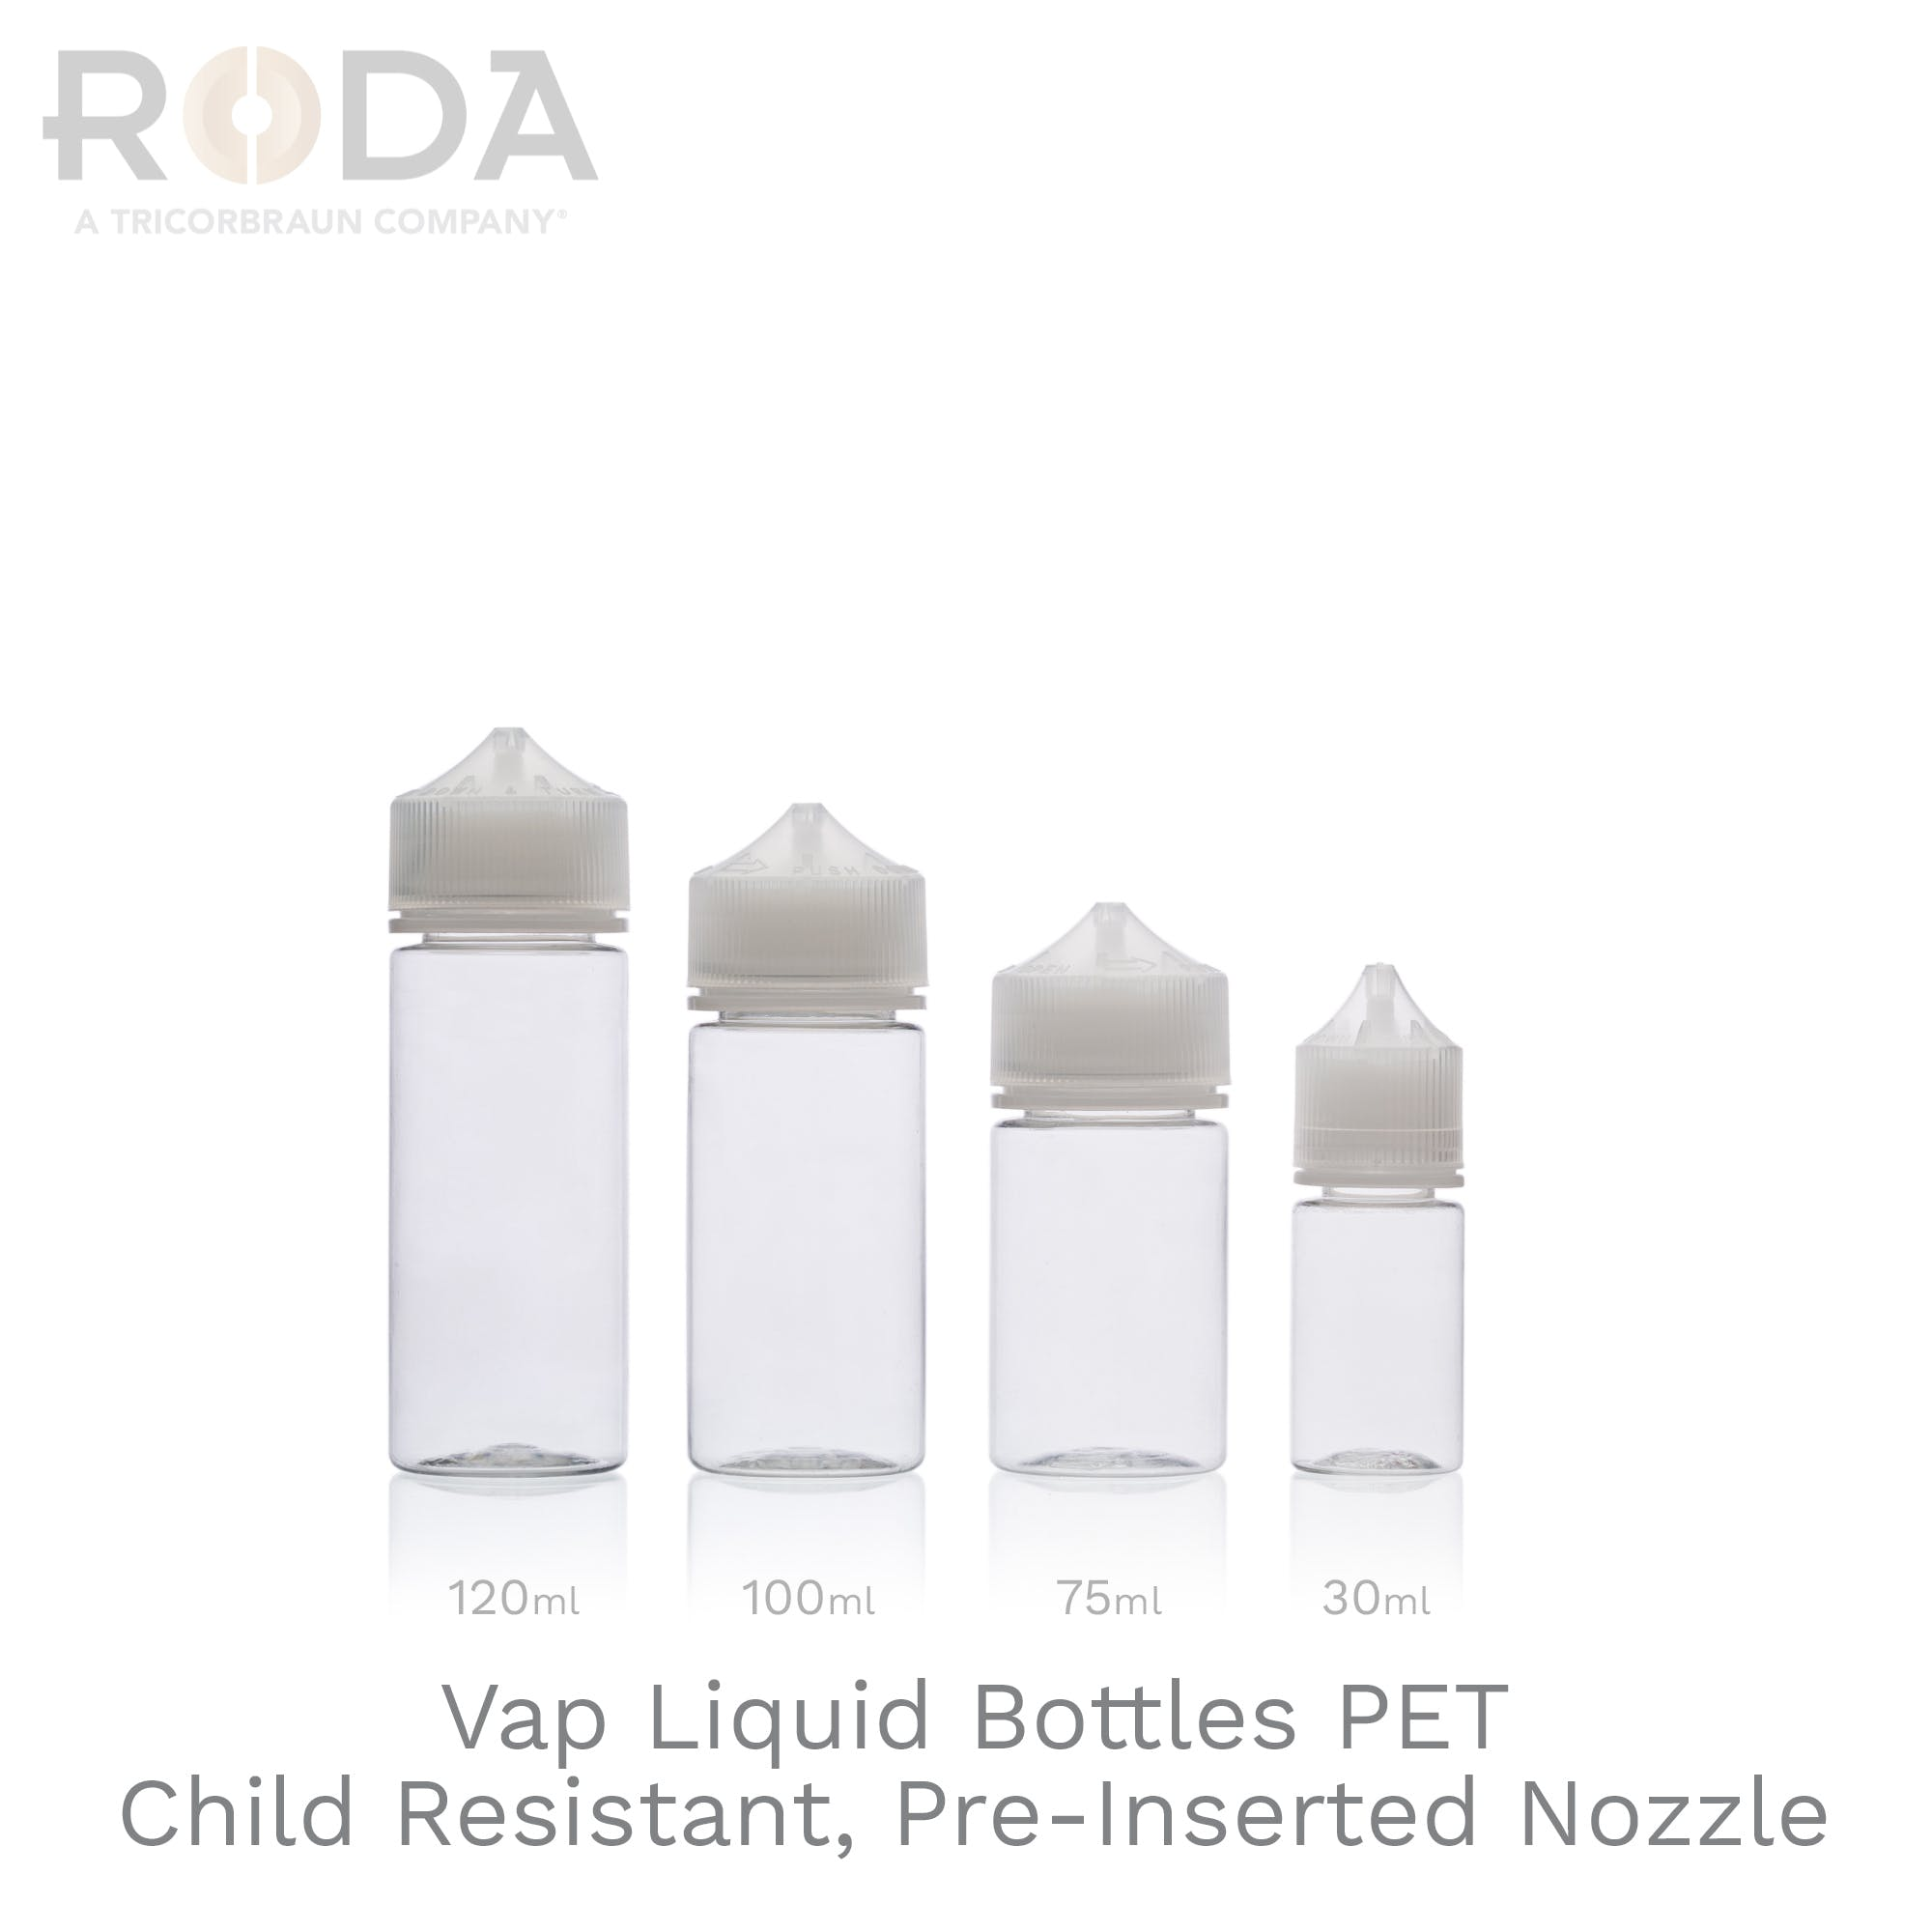 Vap Liquid Bottles PET Child Resistant, Pre-Inserted Nozzle